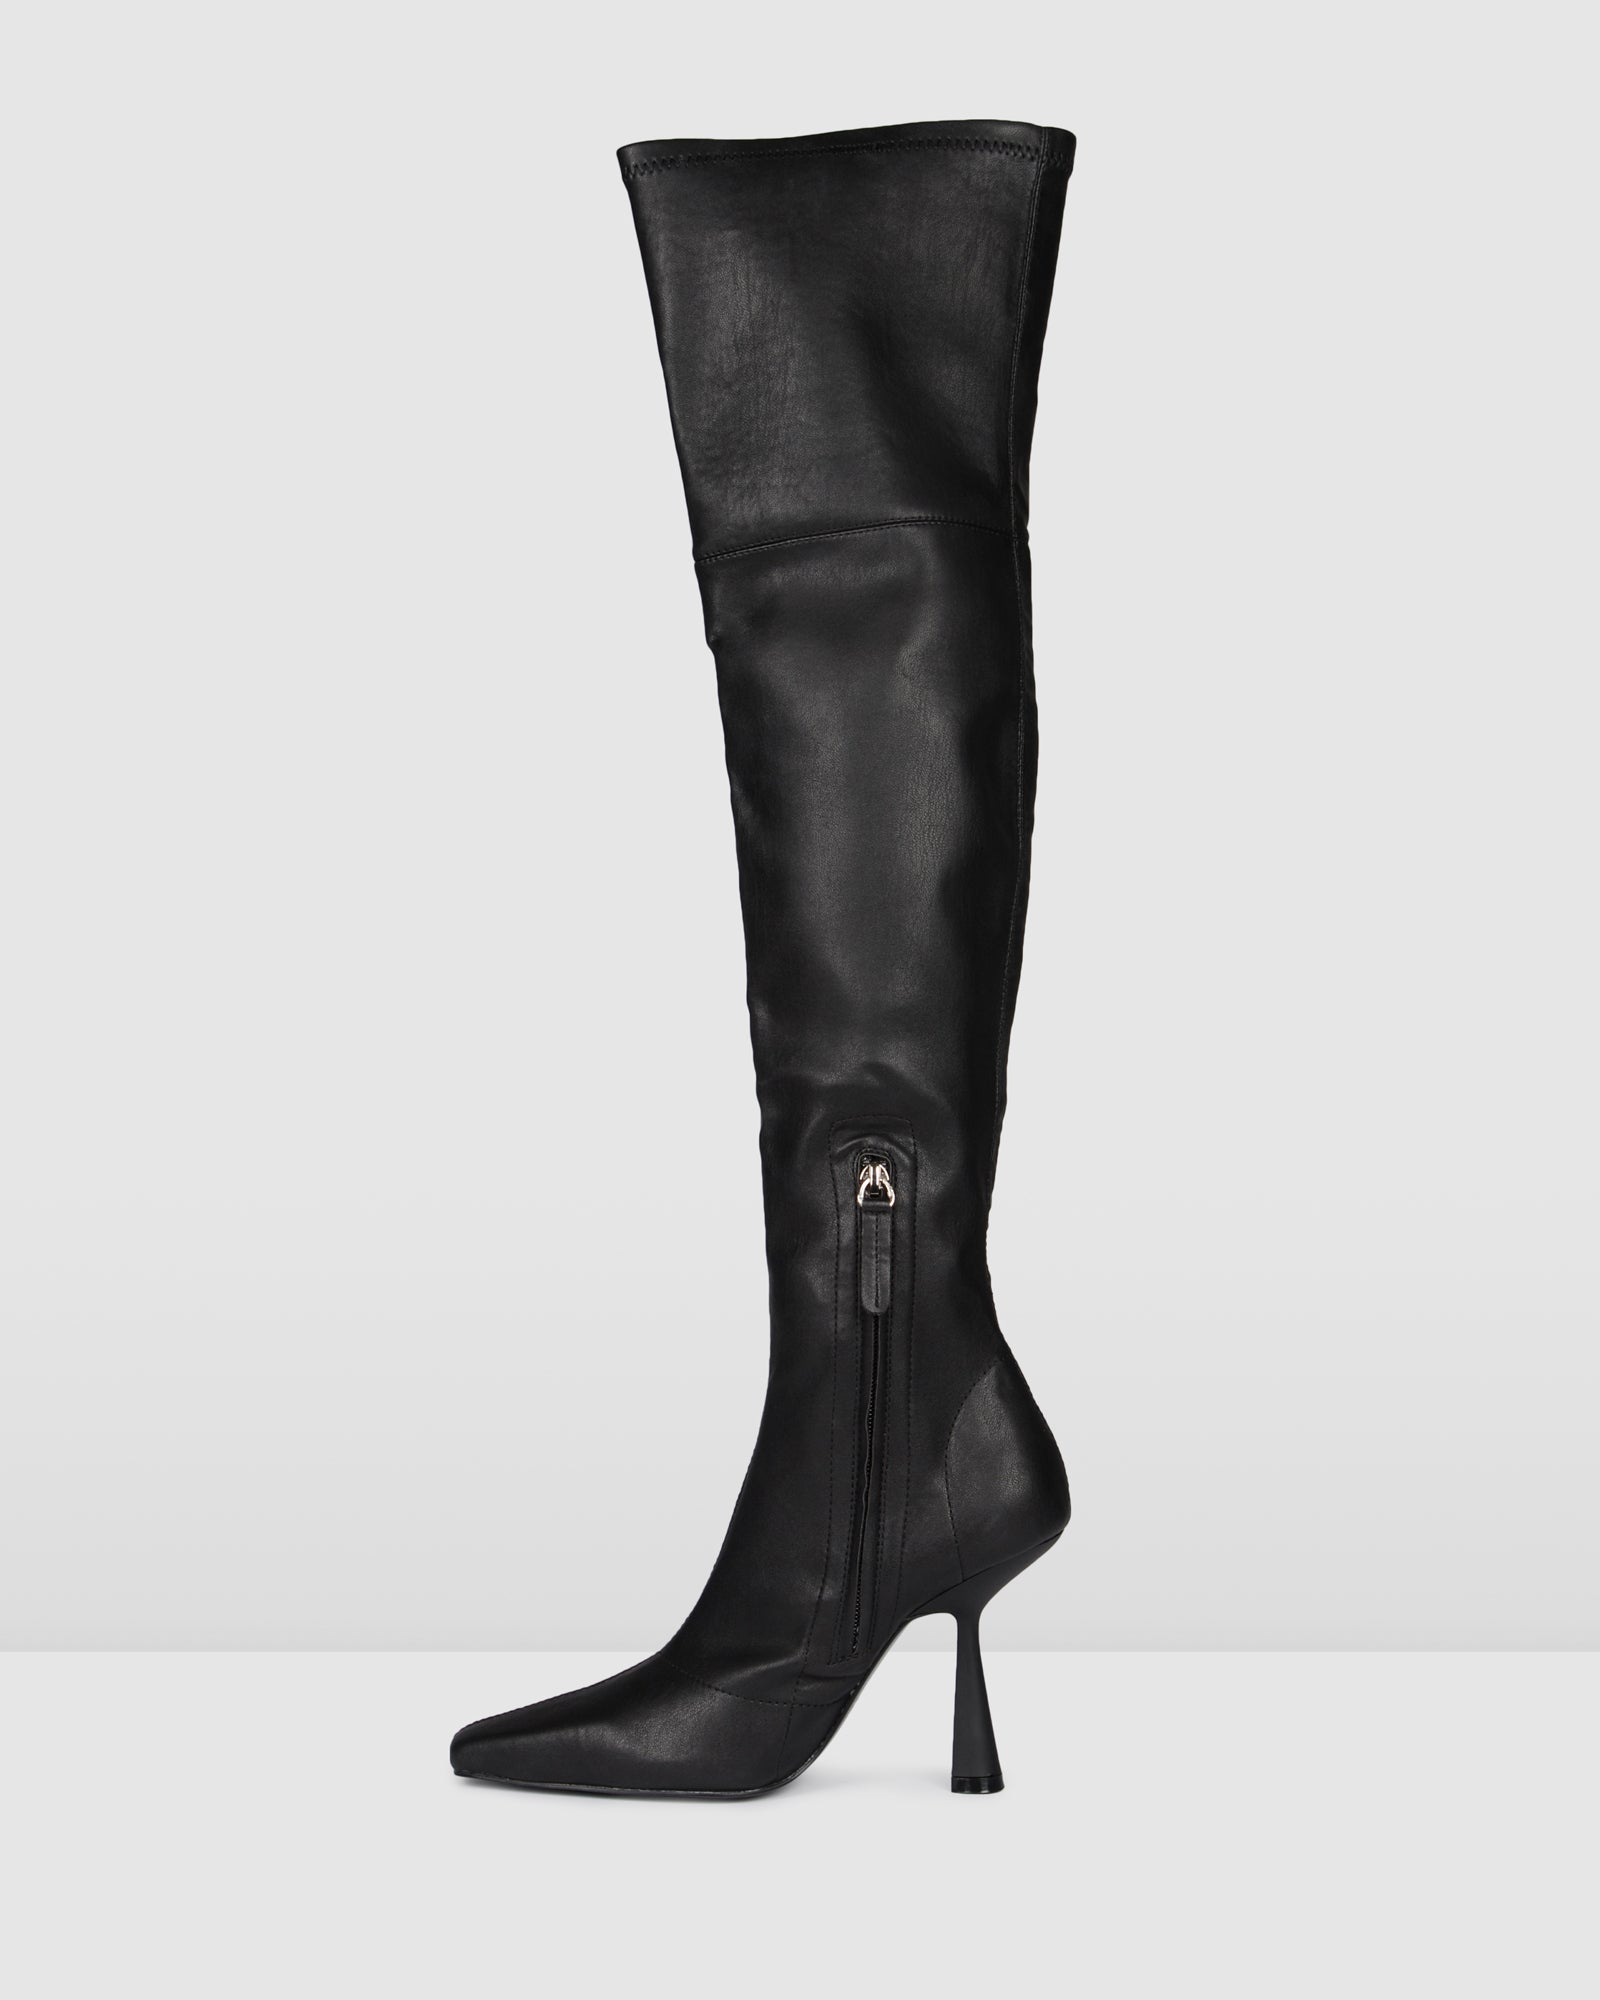 VICEROY OVER THE KNEE BOOT BLACK